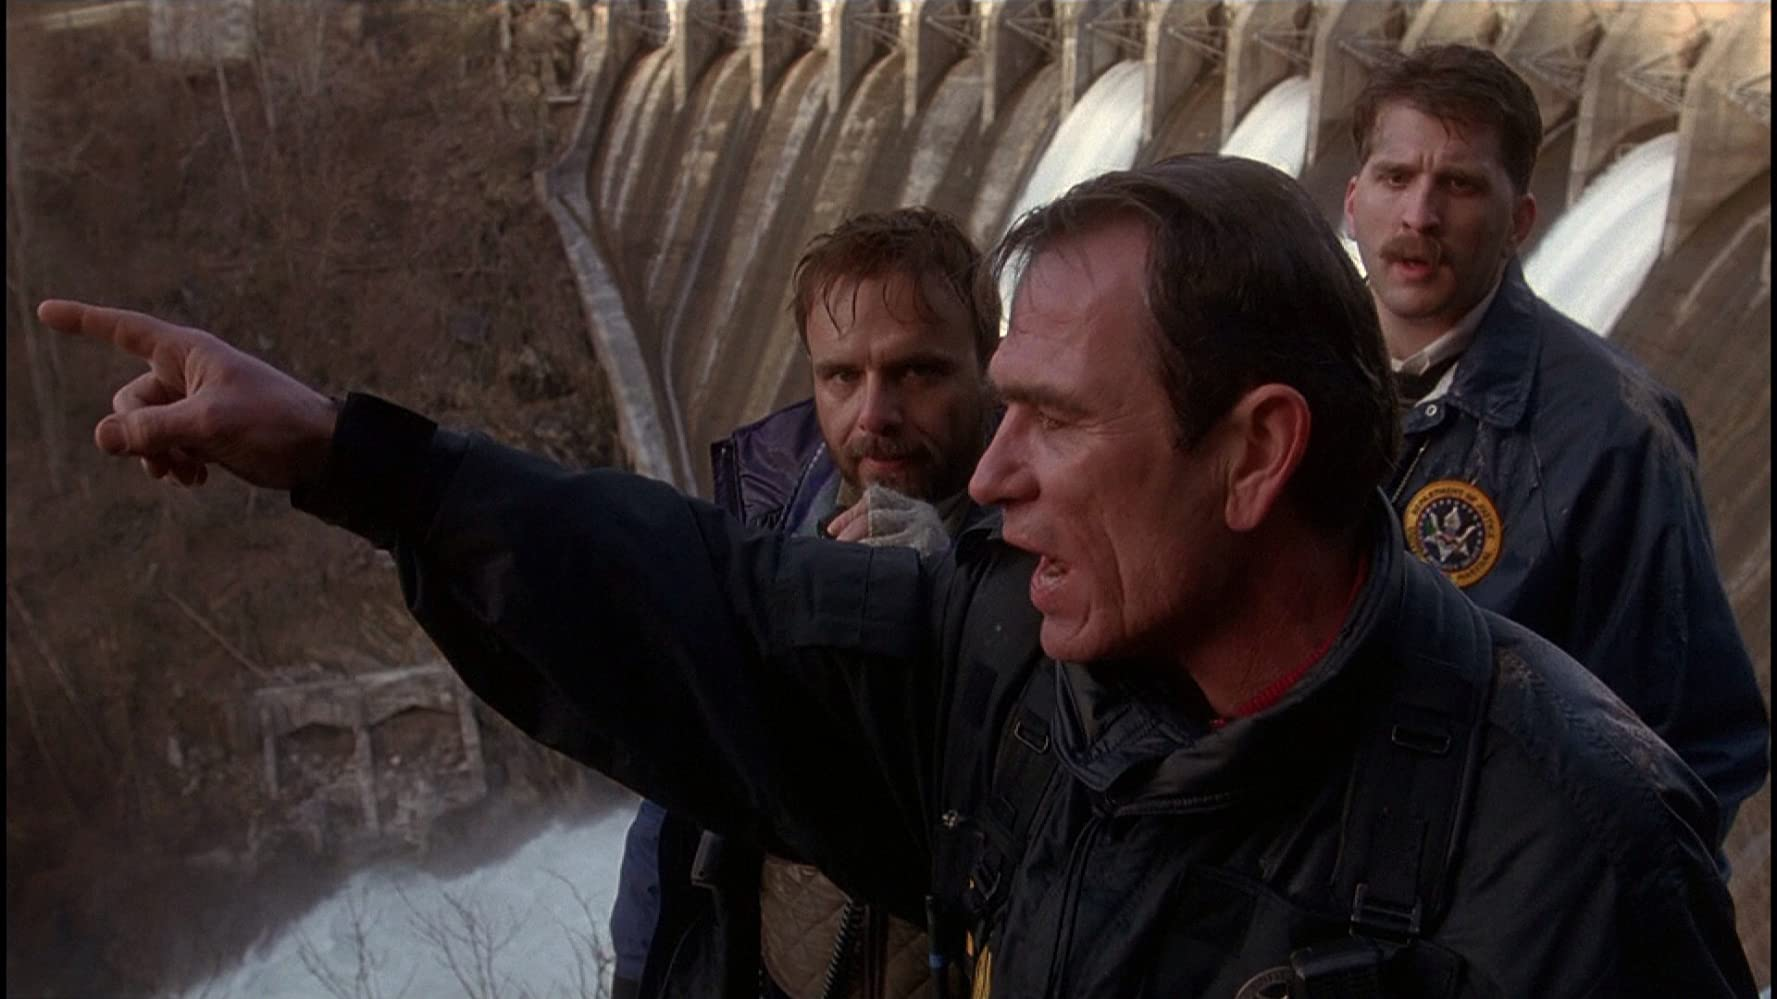 Tommy Lee Jones, Joe Pantoliano, and Daniel Roebuck in The Fugitive (1993)